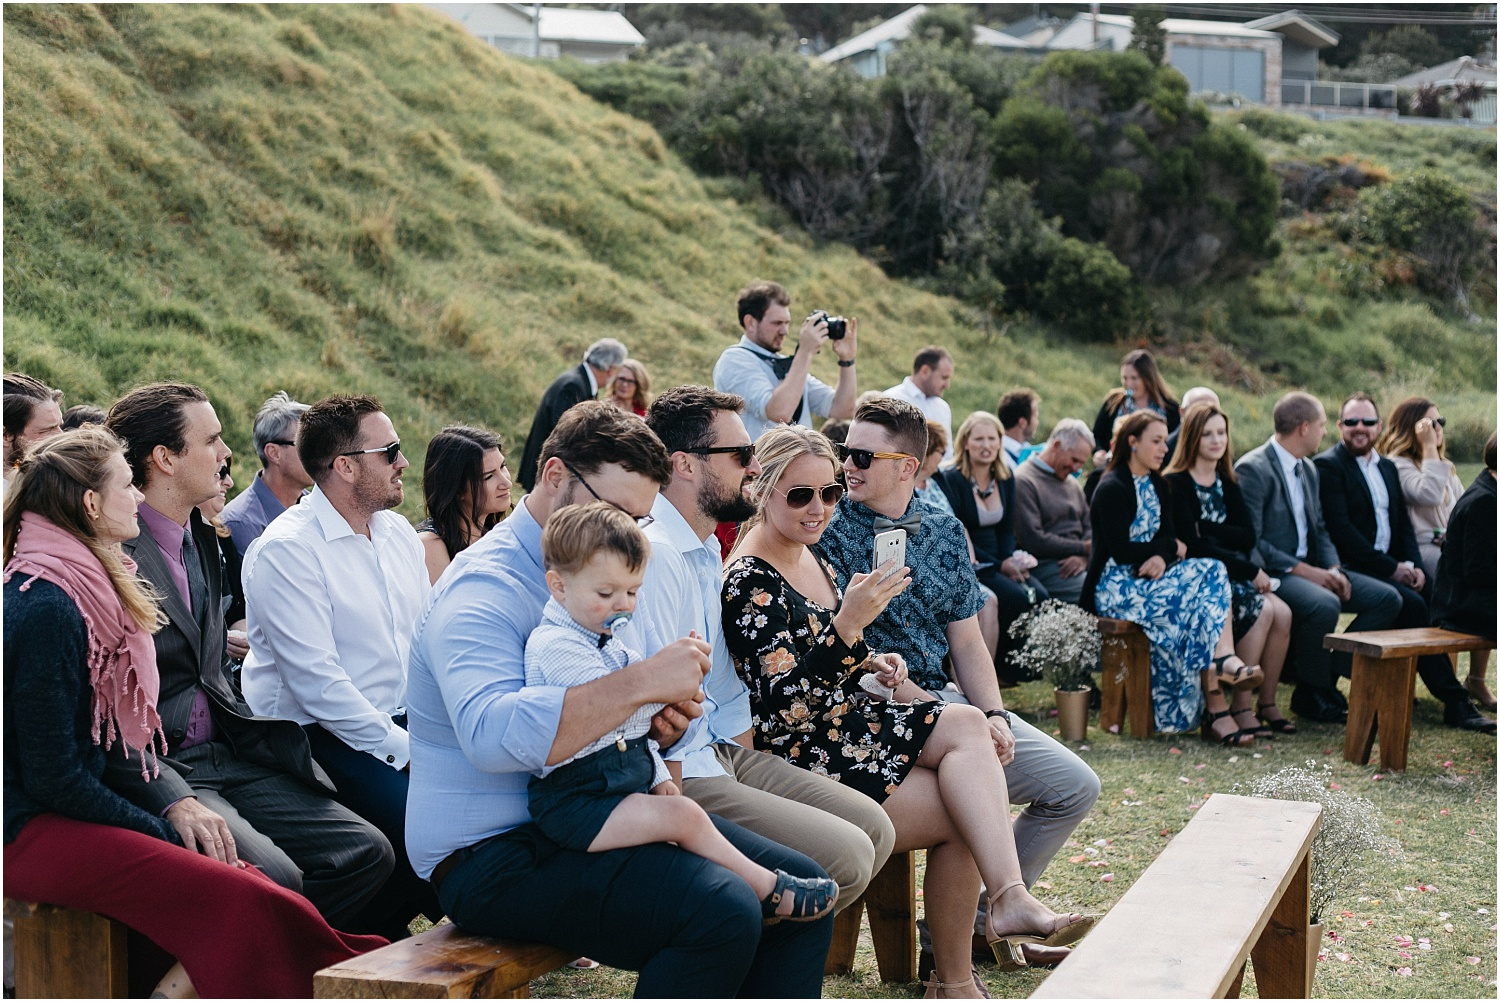 Estelle and Joey's summer beach wedding in Lorne at the Lorne Beach Pavilion on the Great Ocean Road._0052.jpg